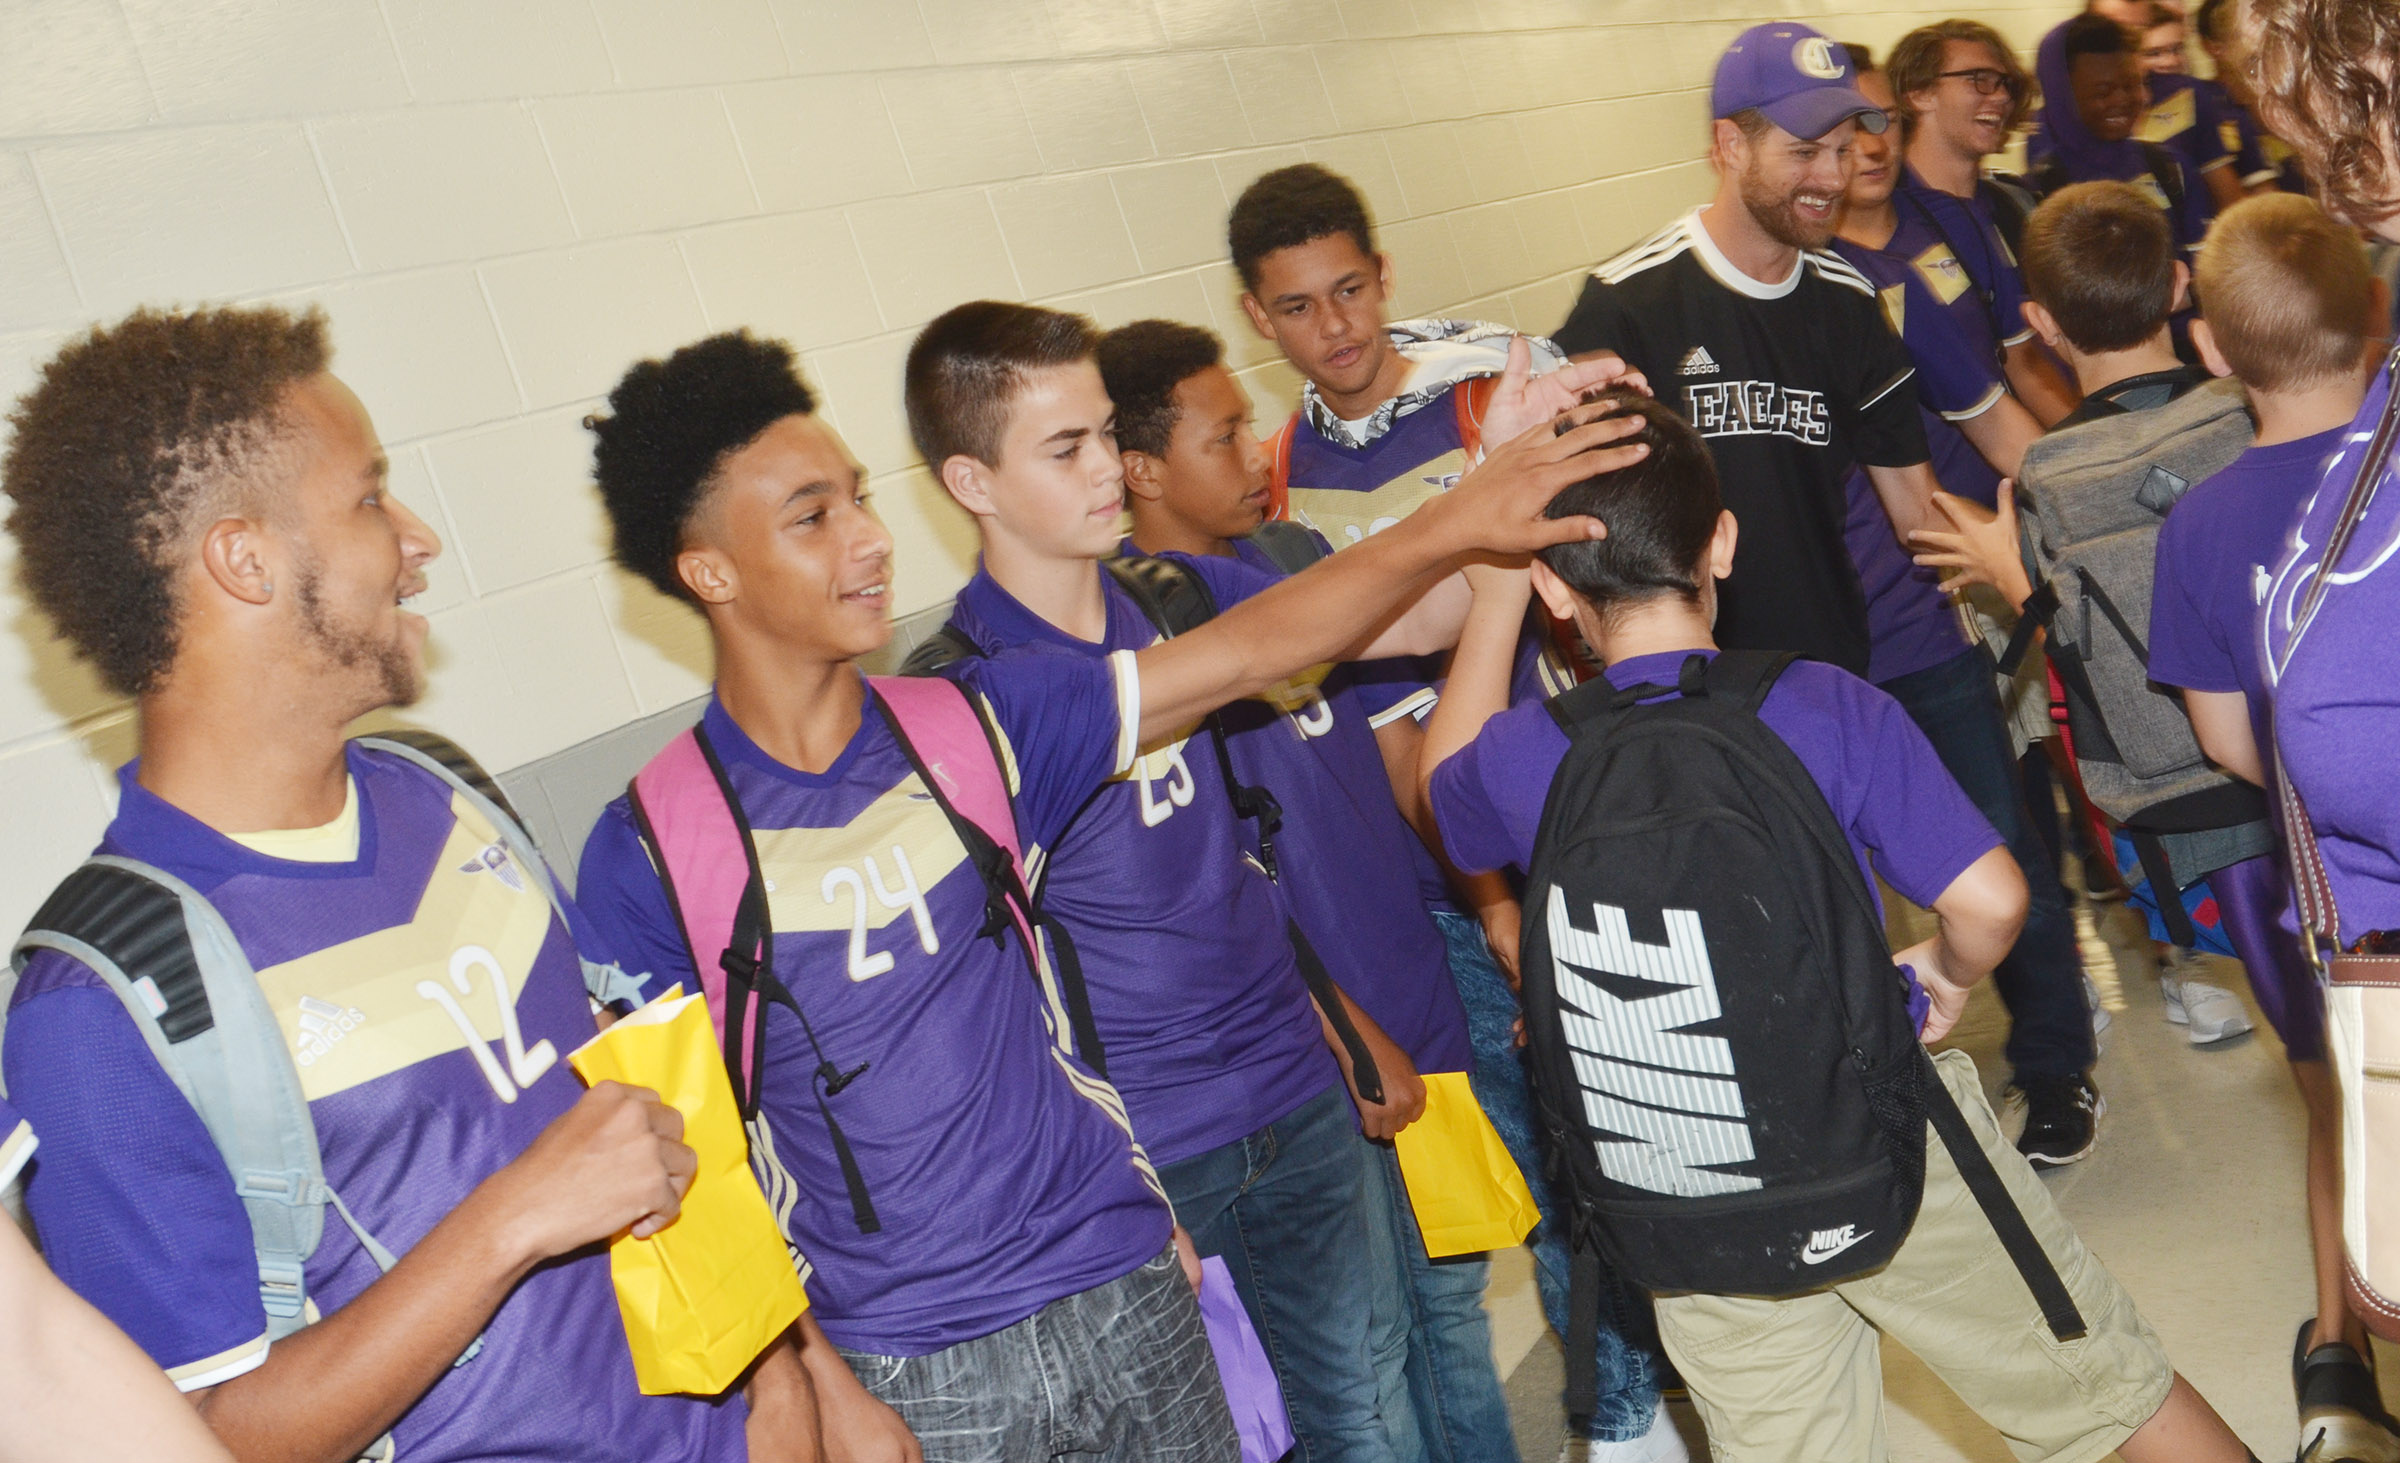 From left, CHS soccer players Ethan Lay, a senior, junior Daniel Johnson, freshmen Clark Kidwell and Jastyn Shively, sophomore Mikael Vaught and assistant coach Matthew Schmuck greet CES students.